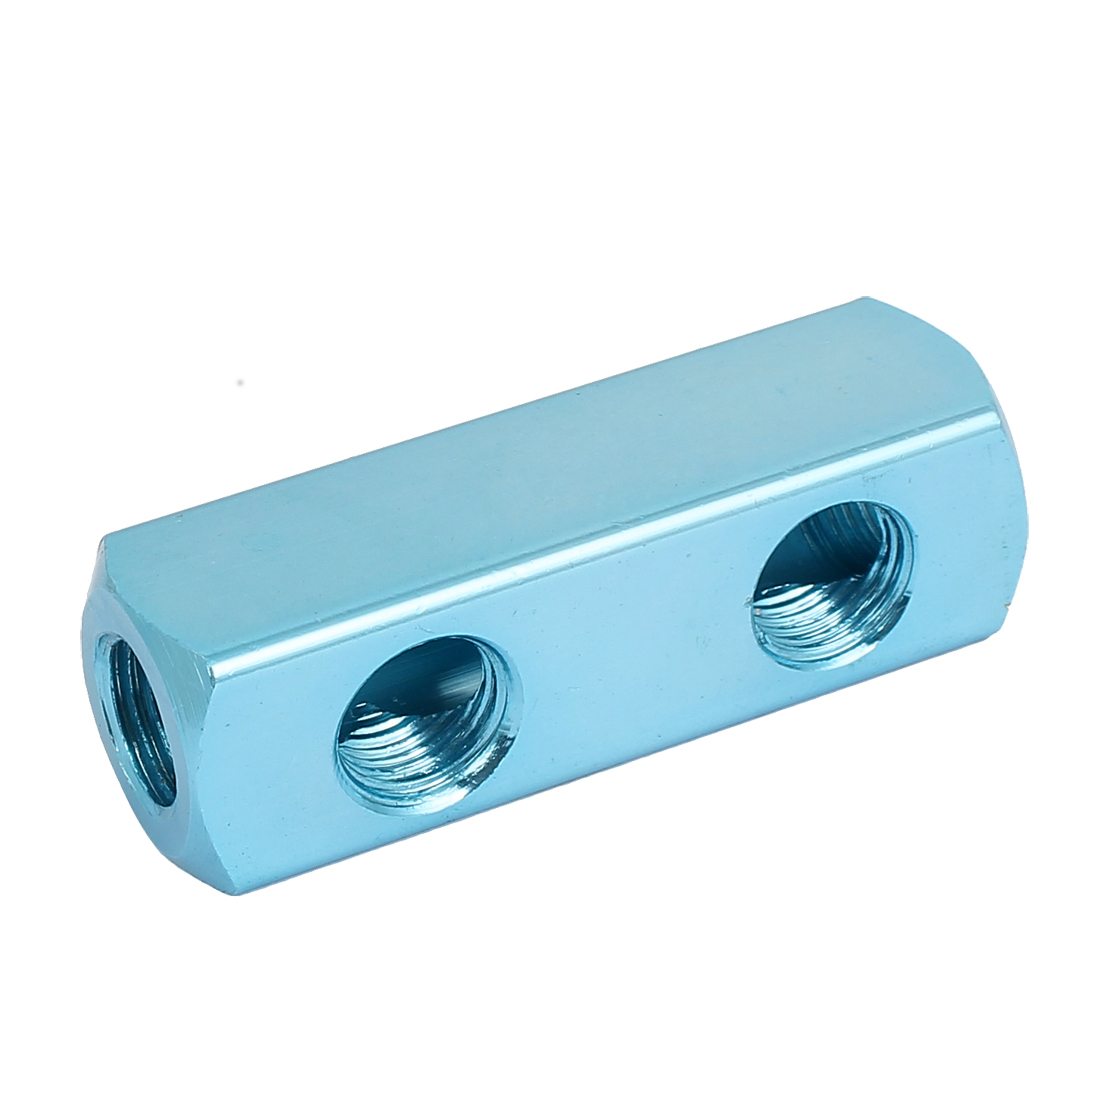 1/4BSP Thread 2 Ways Quick Connect Air Hose Inline Manifold Splitter Block Blue